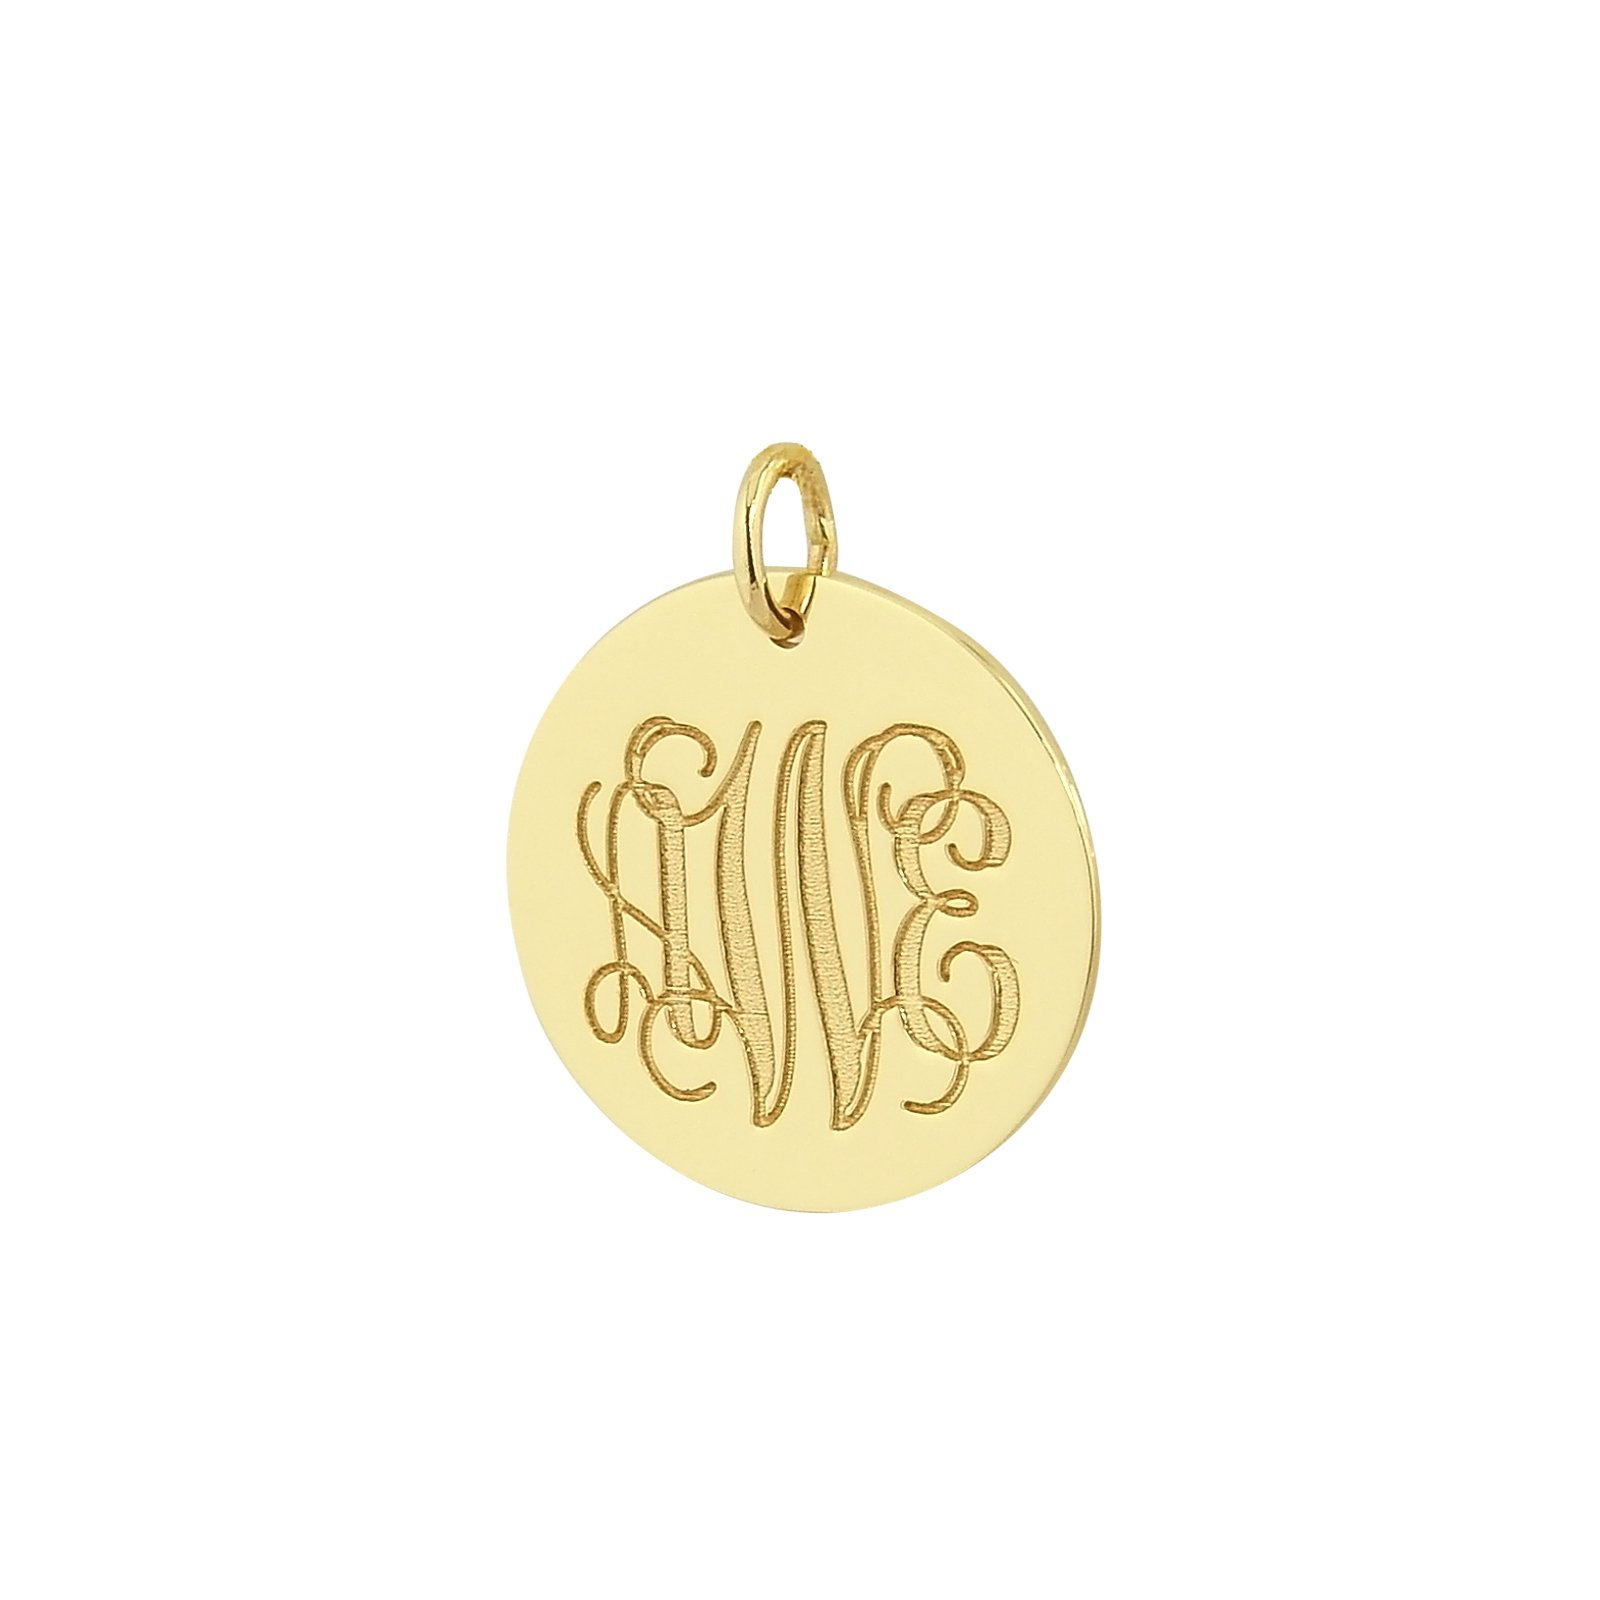 3 Initials Monogram 3/4 Inch Disc Charm Pendant Solid 14k Yellow Gold Laser Engraving GC08 (0)